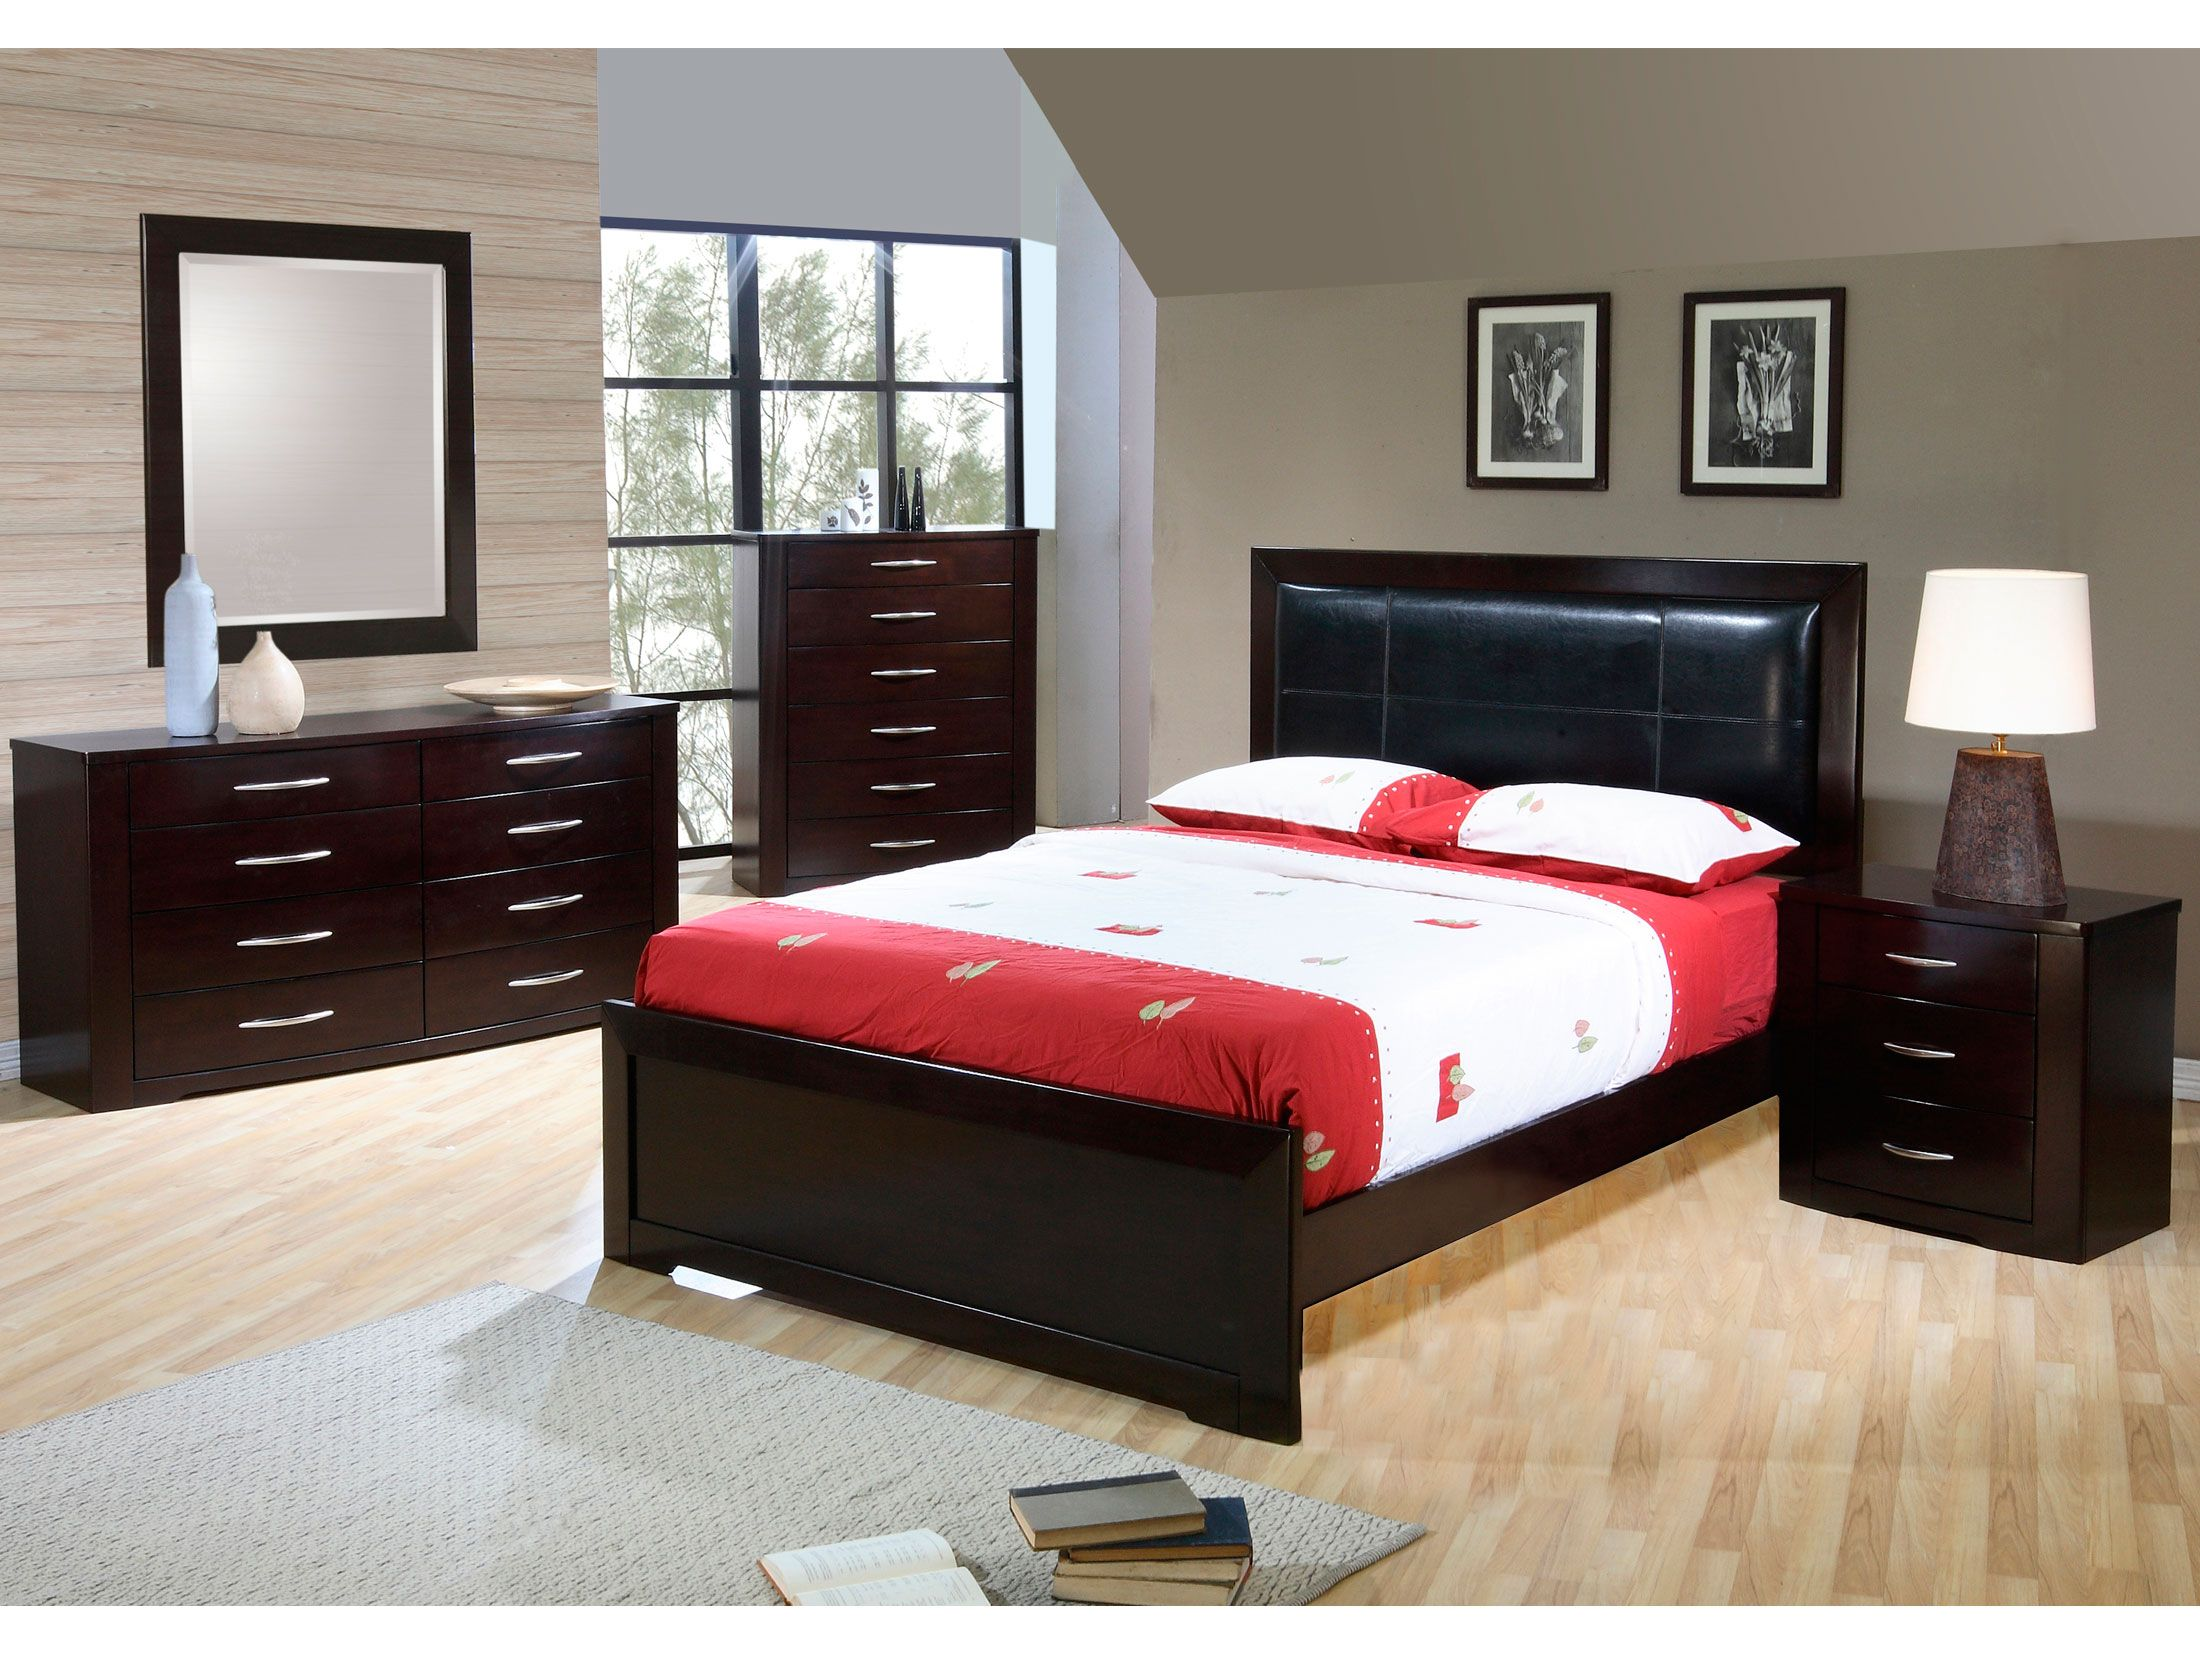 Murano Bedroom Collection From Jeromes.